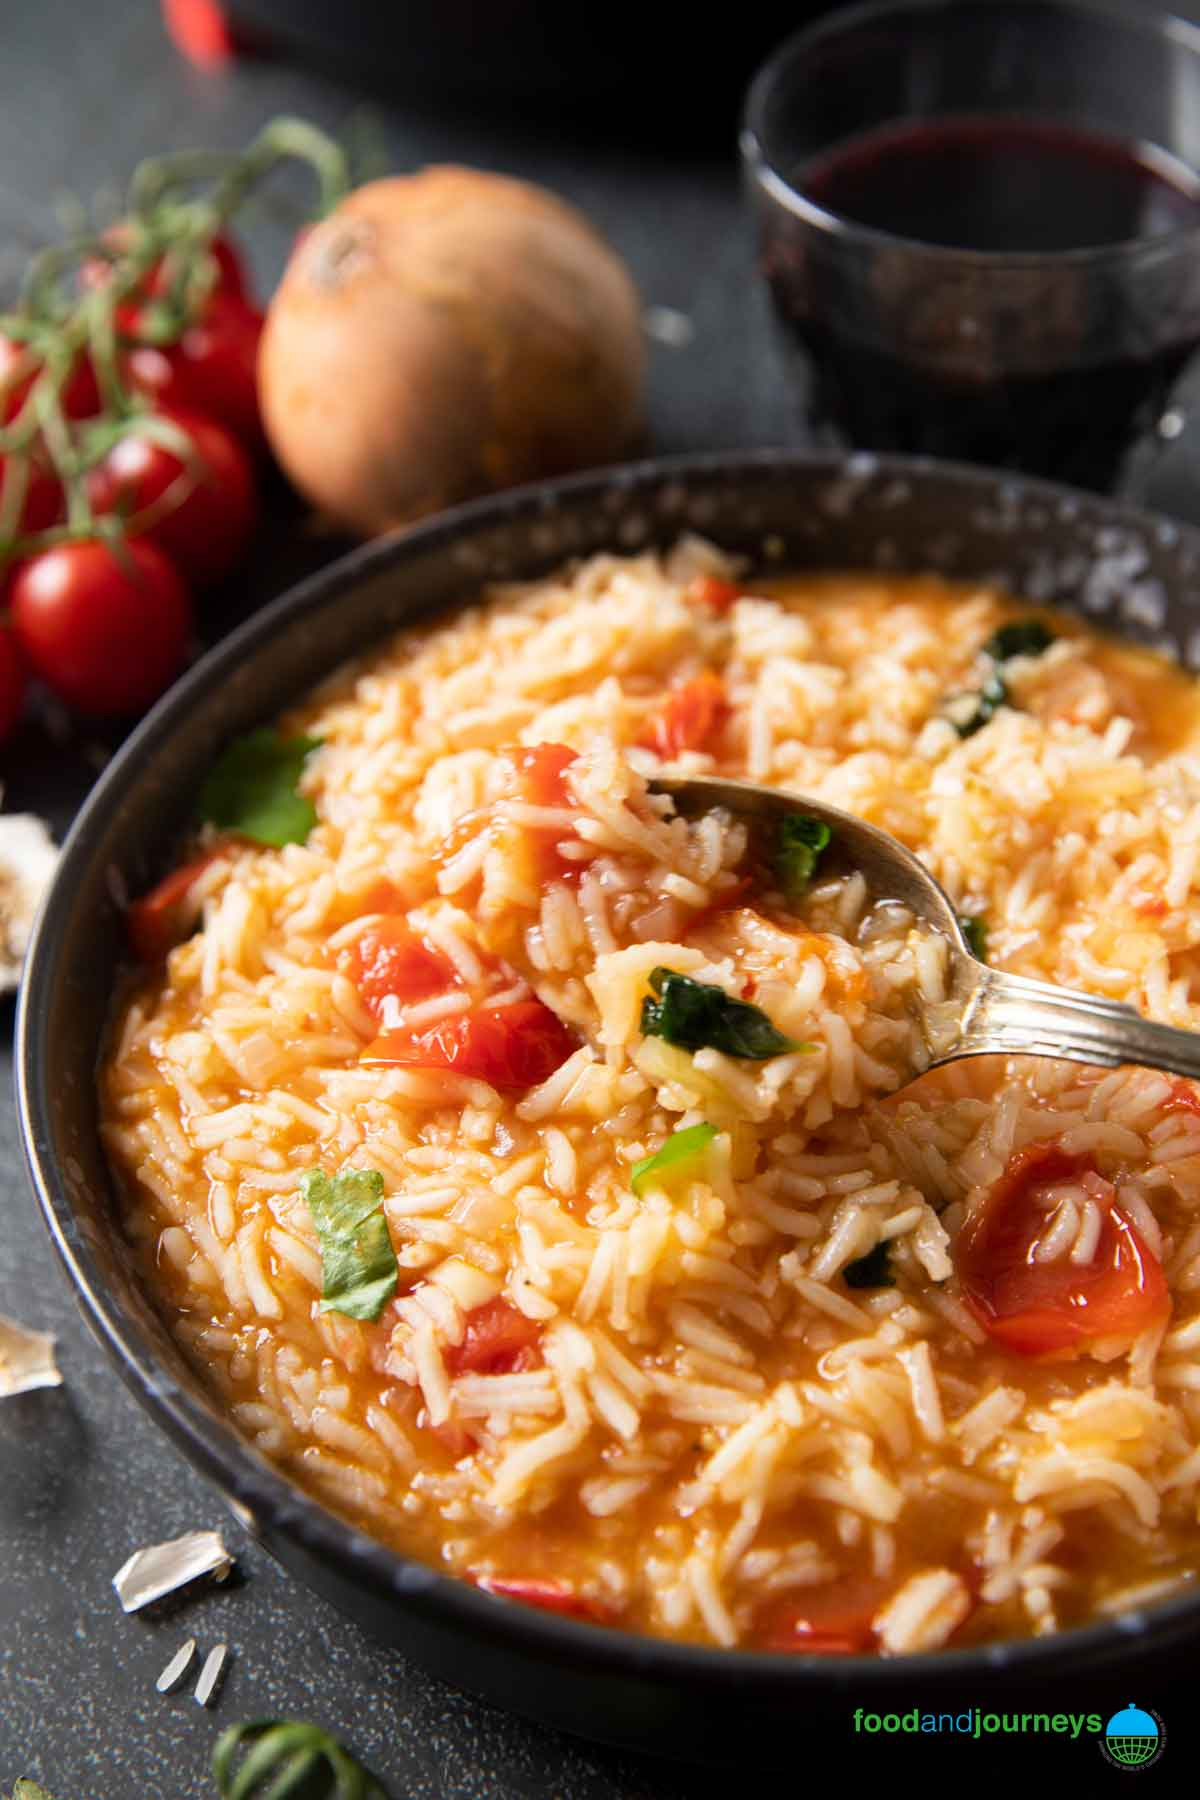 A closer shot of a serving of tomato rice, with a spoon showing the texture of the rice.